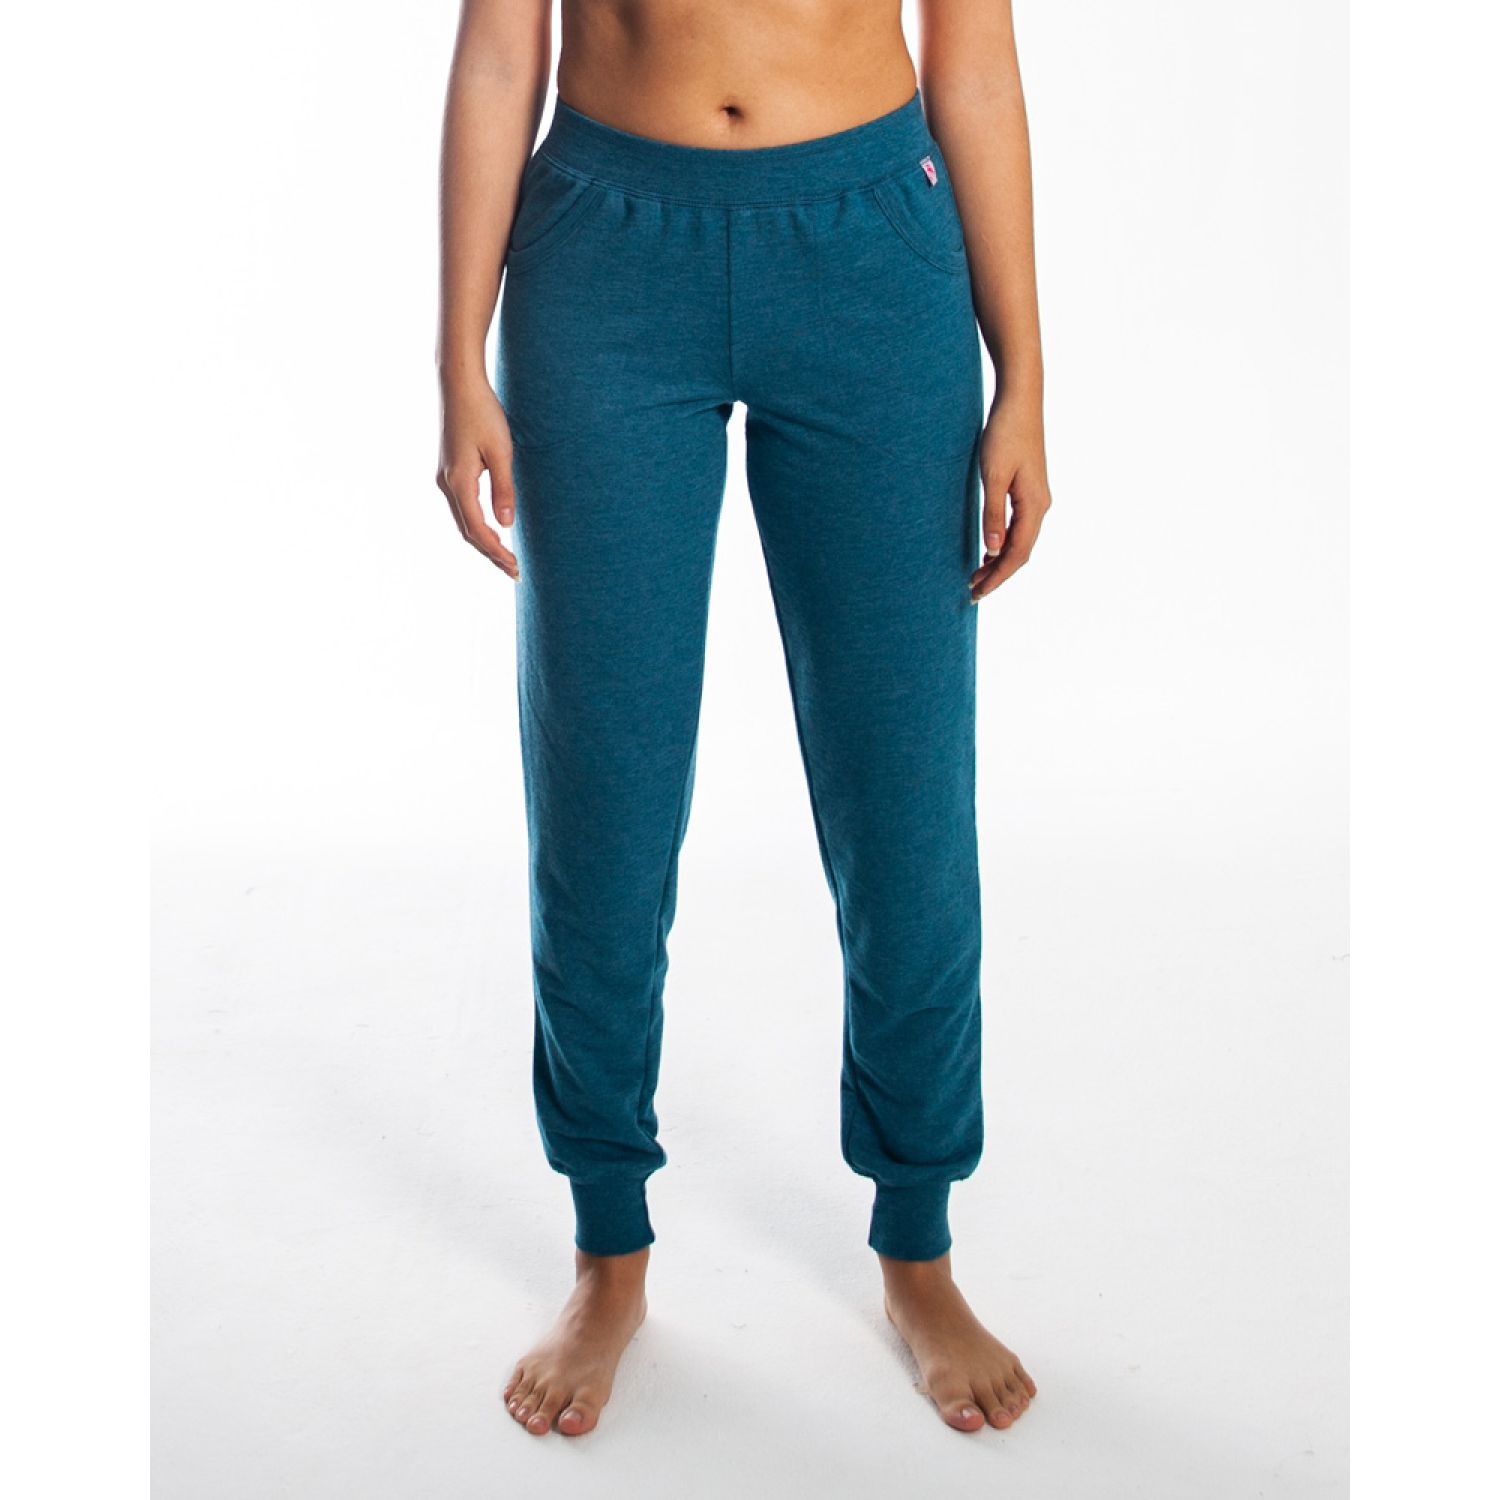 Rising Dragon jogger mujer french terry Turquesa Sets Deportivos Tops y Bottoms